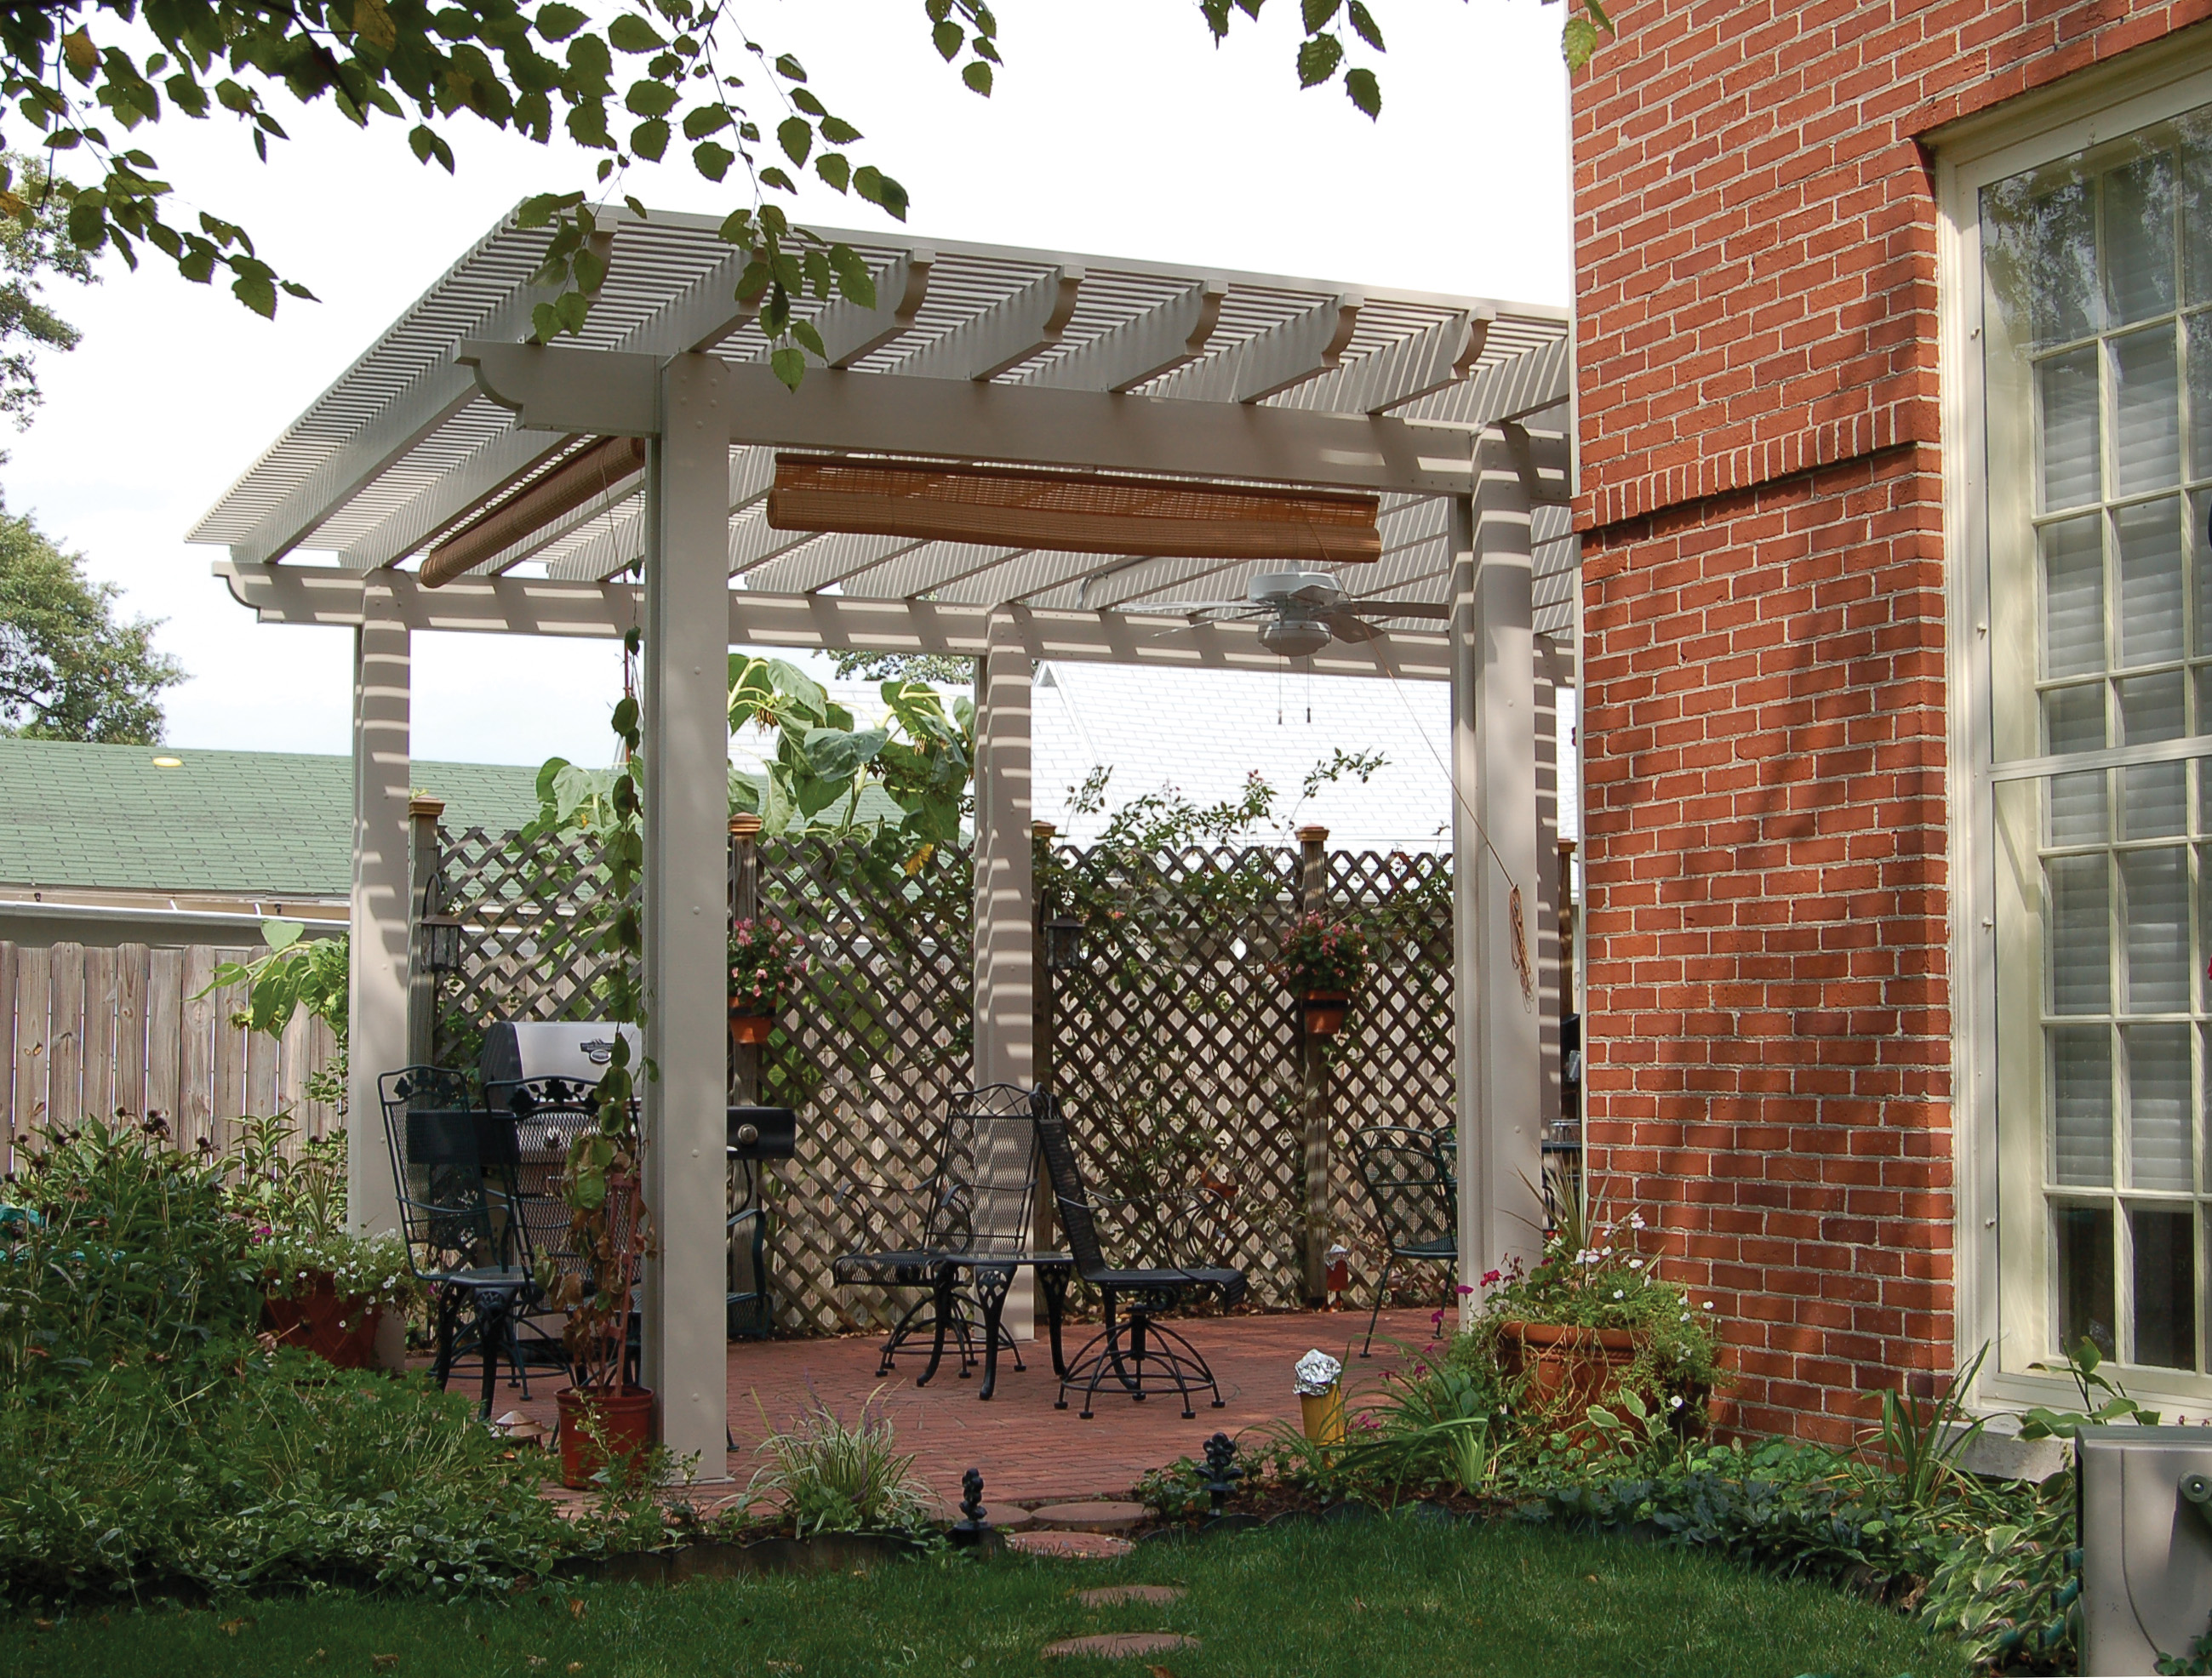 astonishing free standing aluminum pergola garden landscape. Black Bedroom Furniture Sets. Home Design Ideas